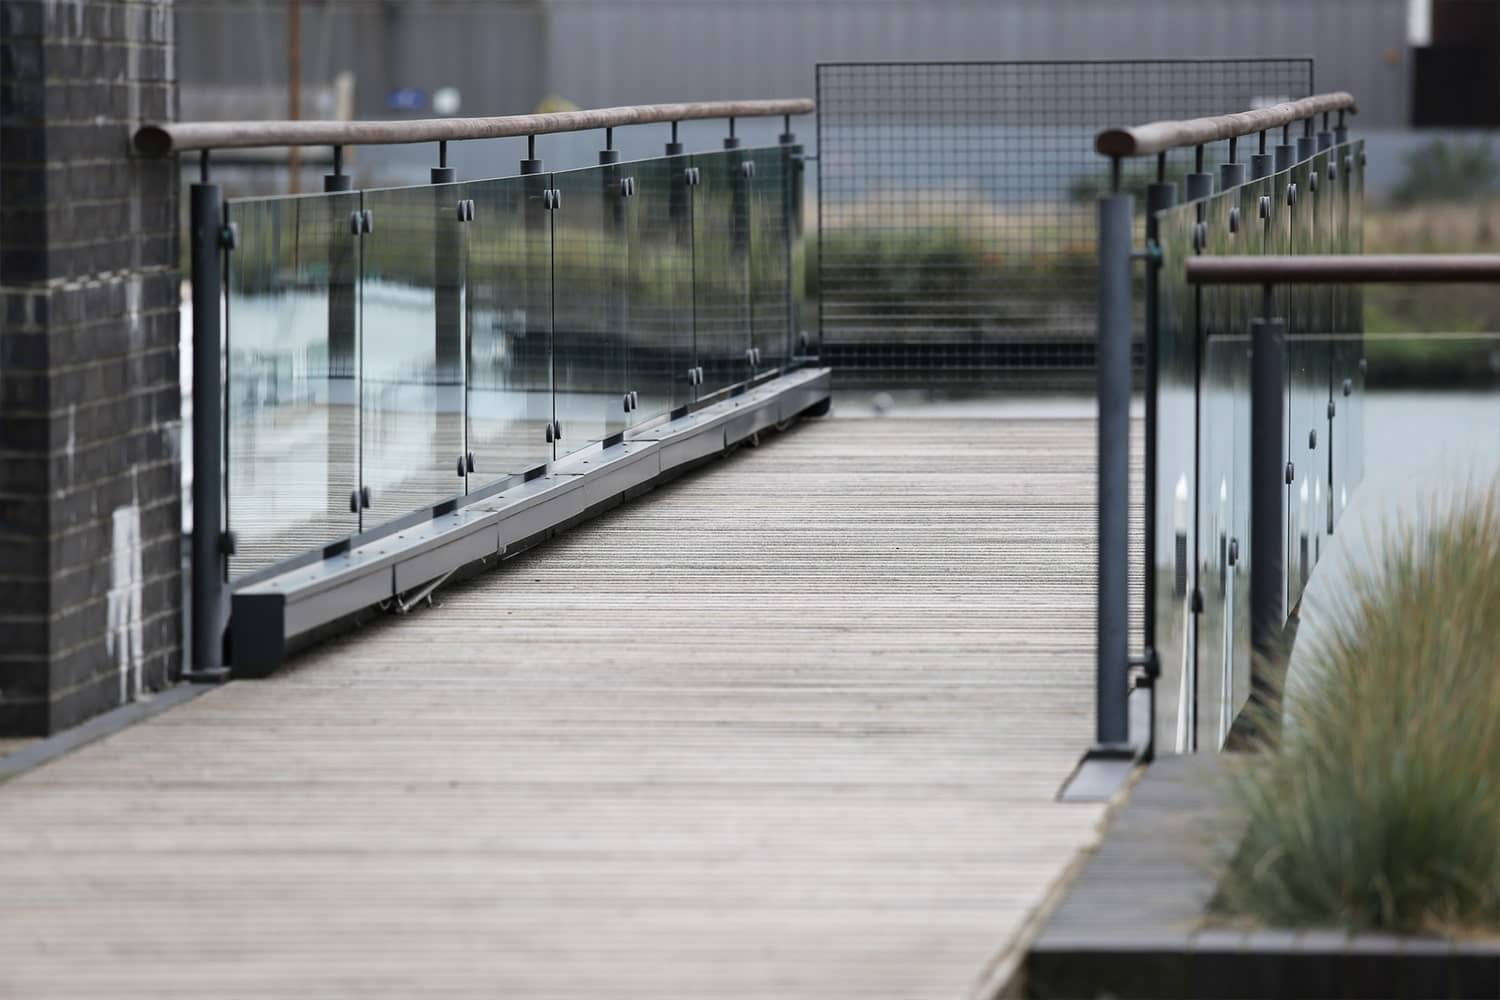 Public Areas in Canary Wharf With Decked Pathways